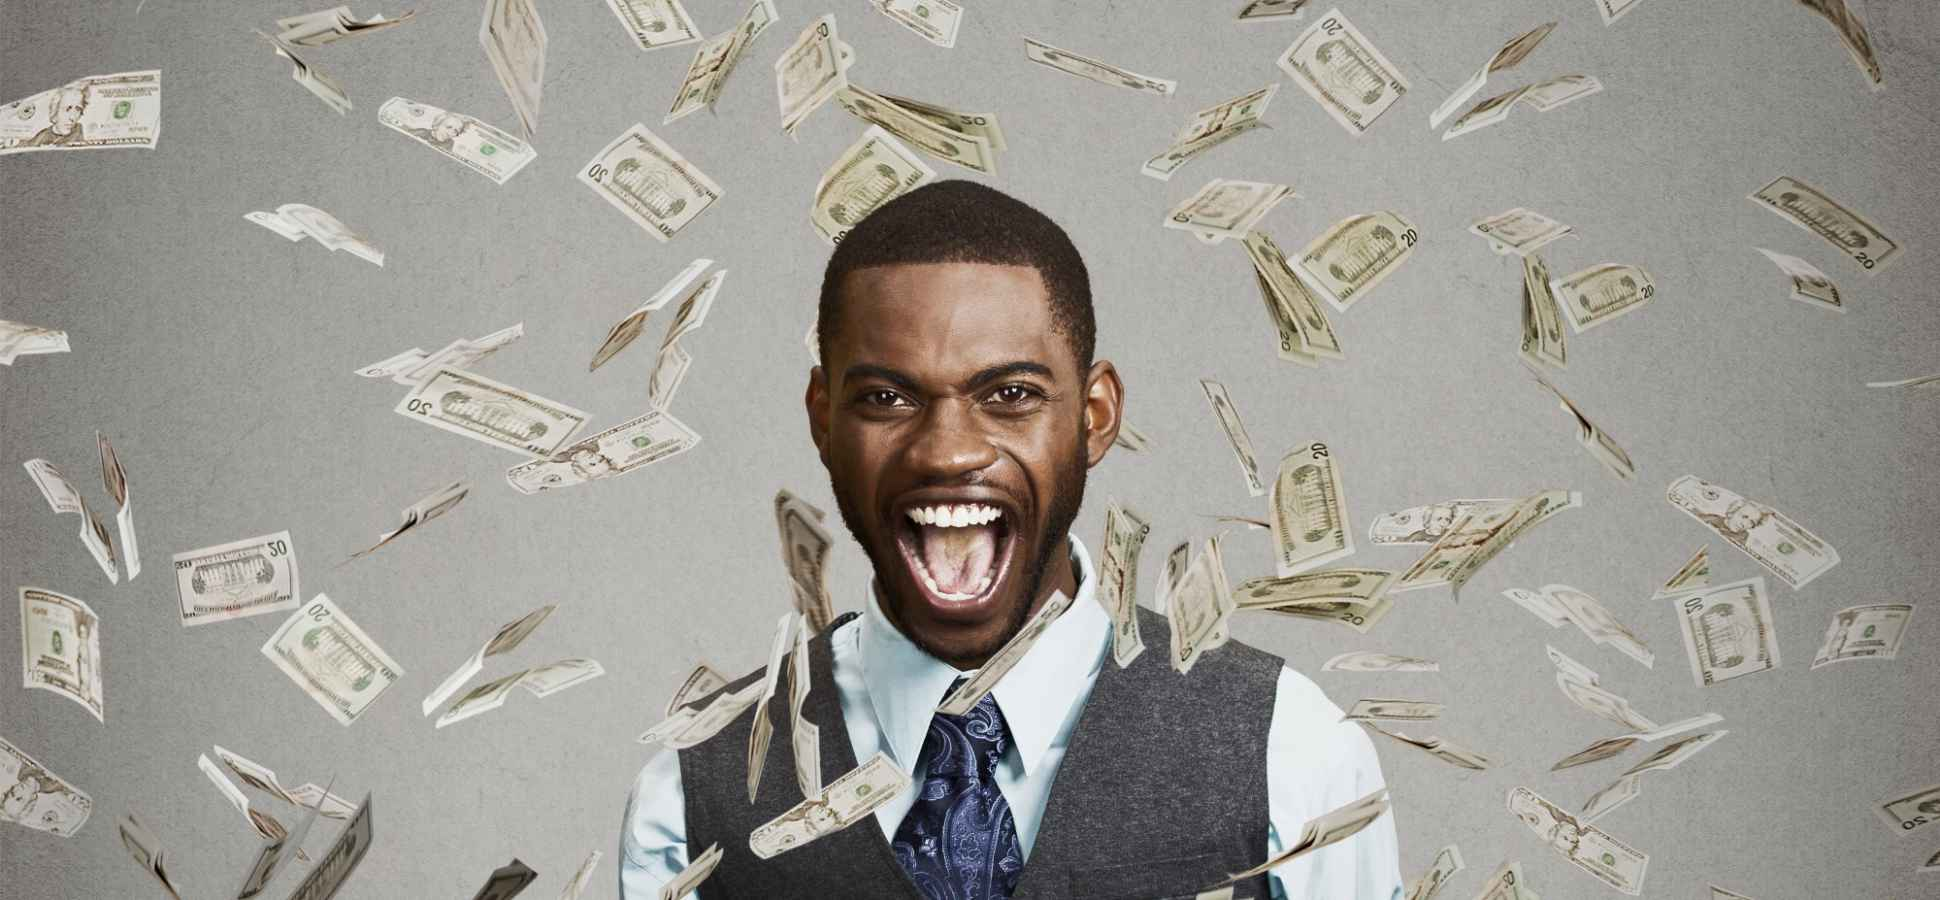 The 7 Principles That Can Make You a Millionaire By 30